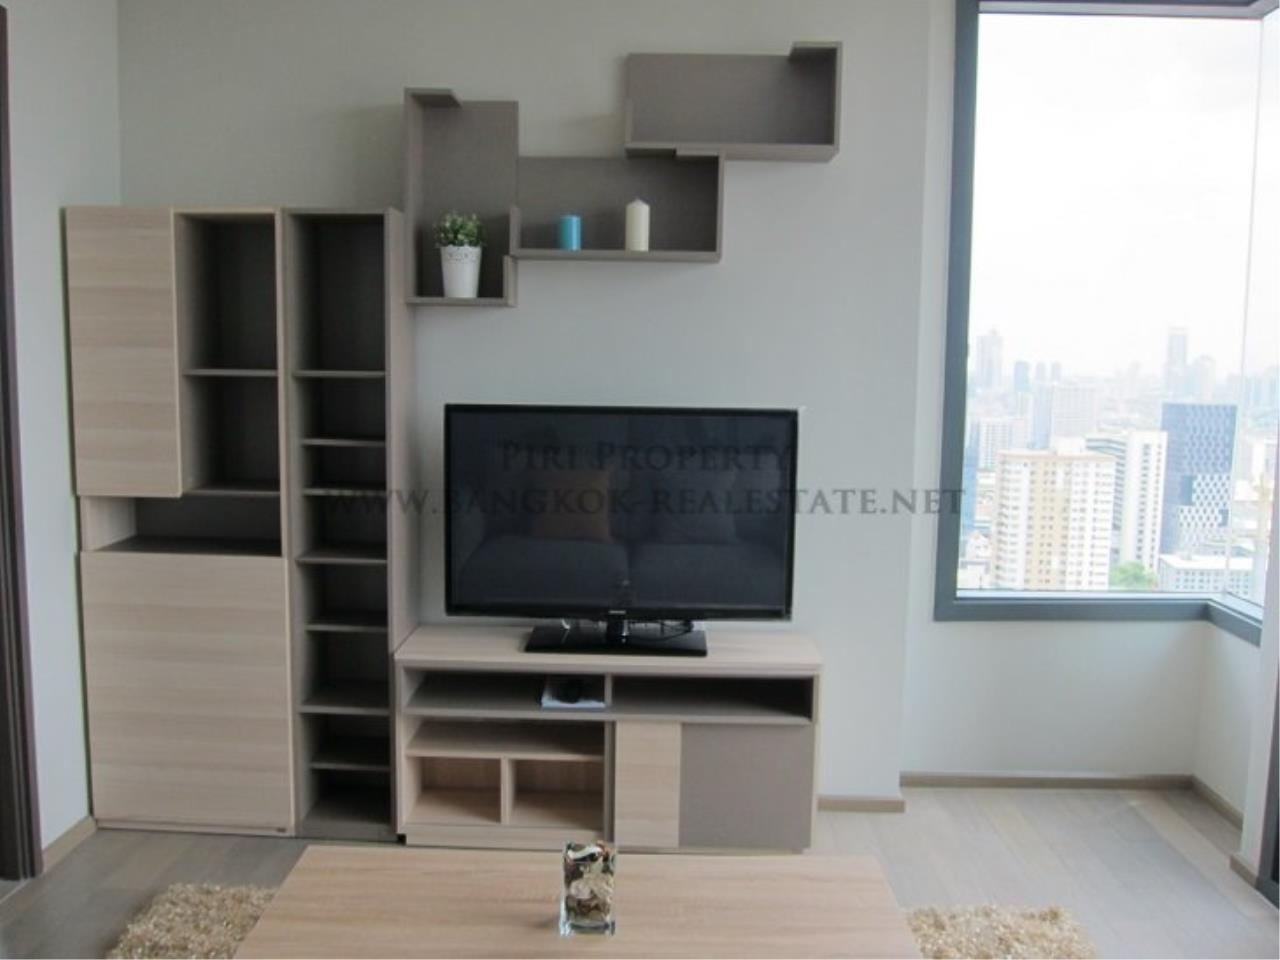 Piri Property Agency's Pyne by Sansiri Condo for Rent - 2 Bedroom on High Floor 2